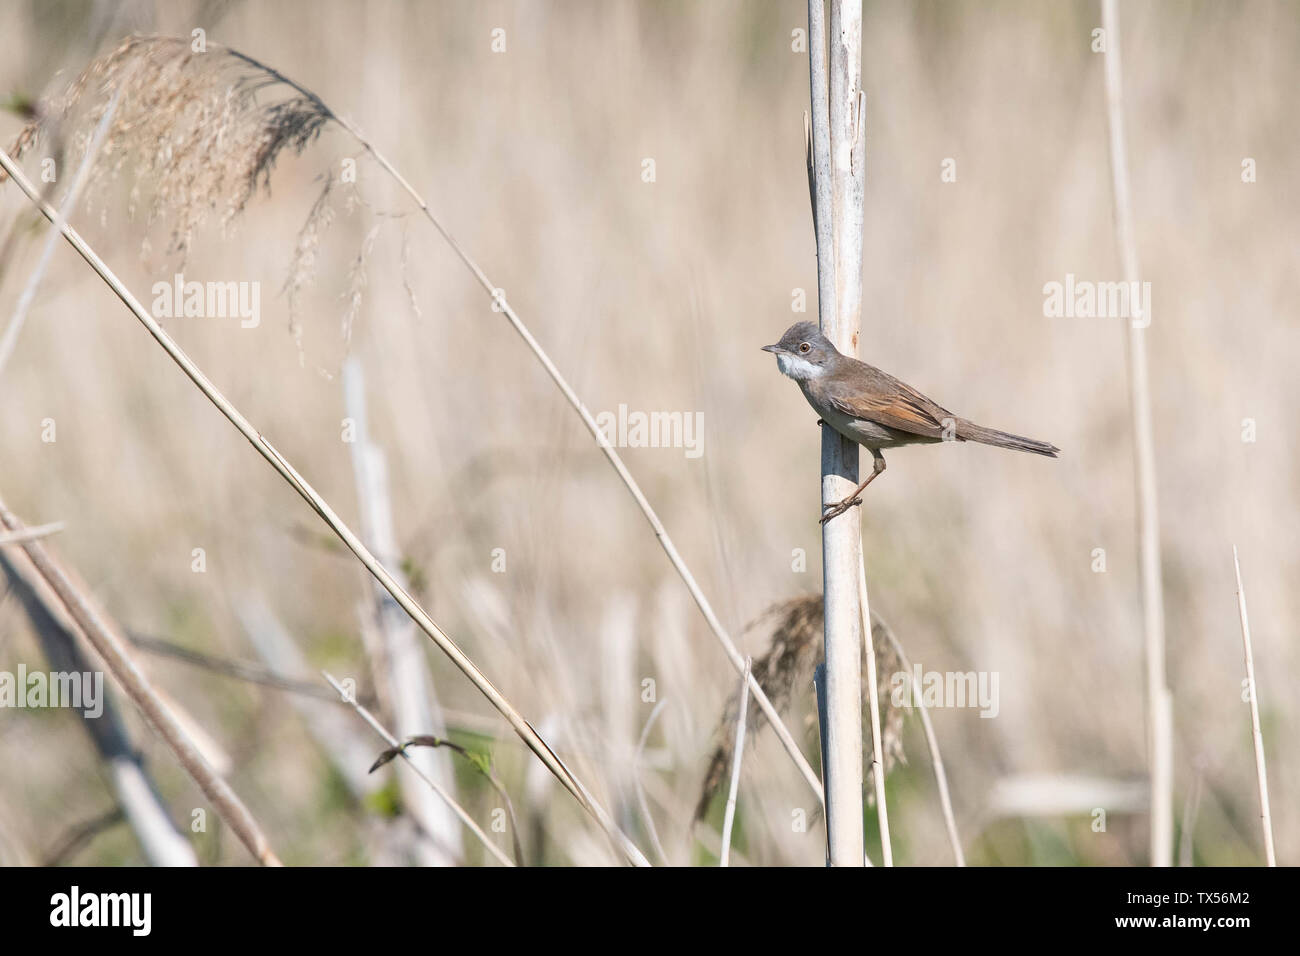 Common Whitethroat bird (Sylvia communis) male - with fluffed feathers perched on dried reed, Norfolk, England, UK - Stock Image